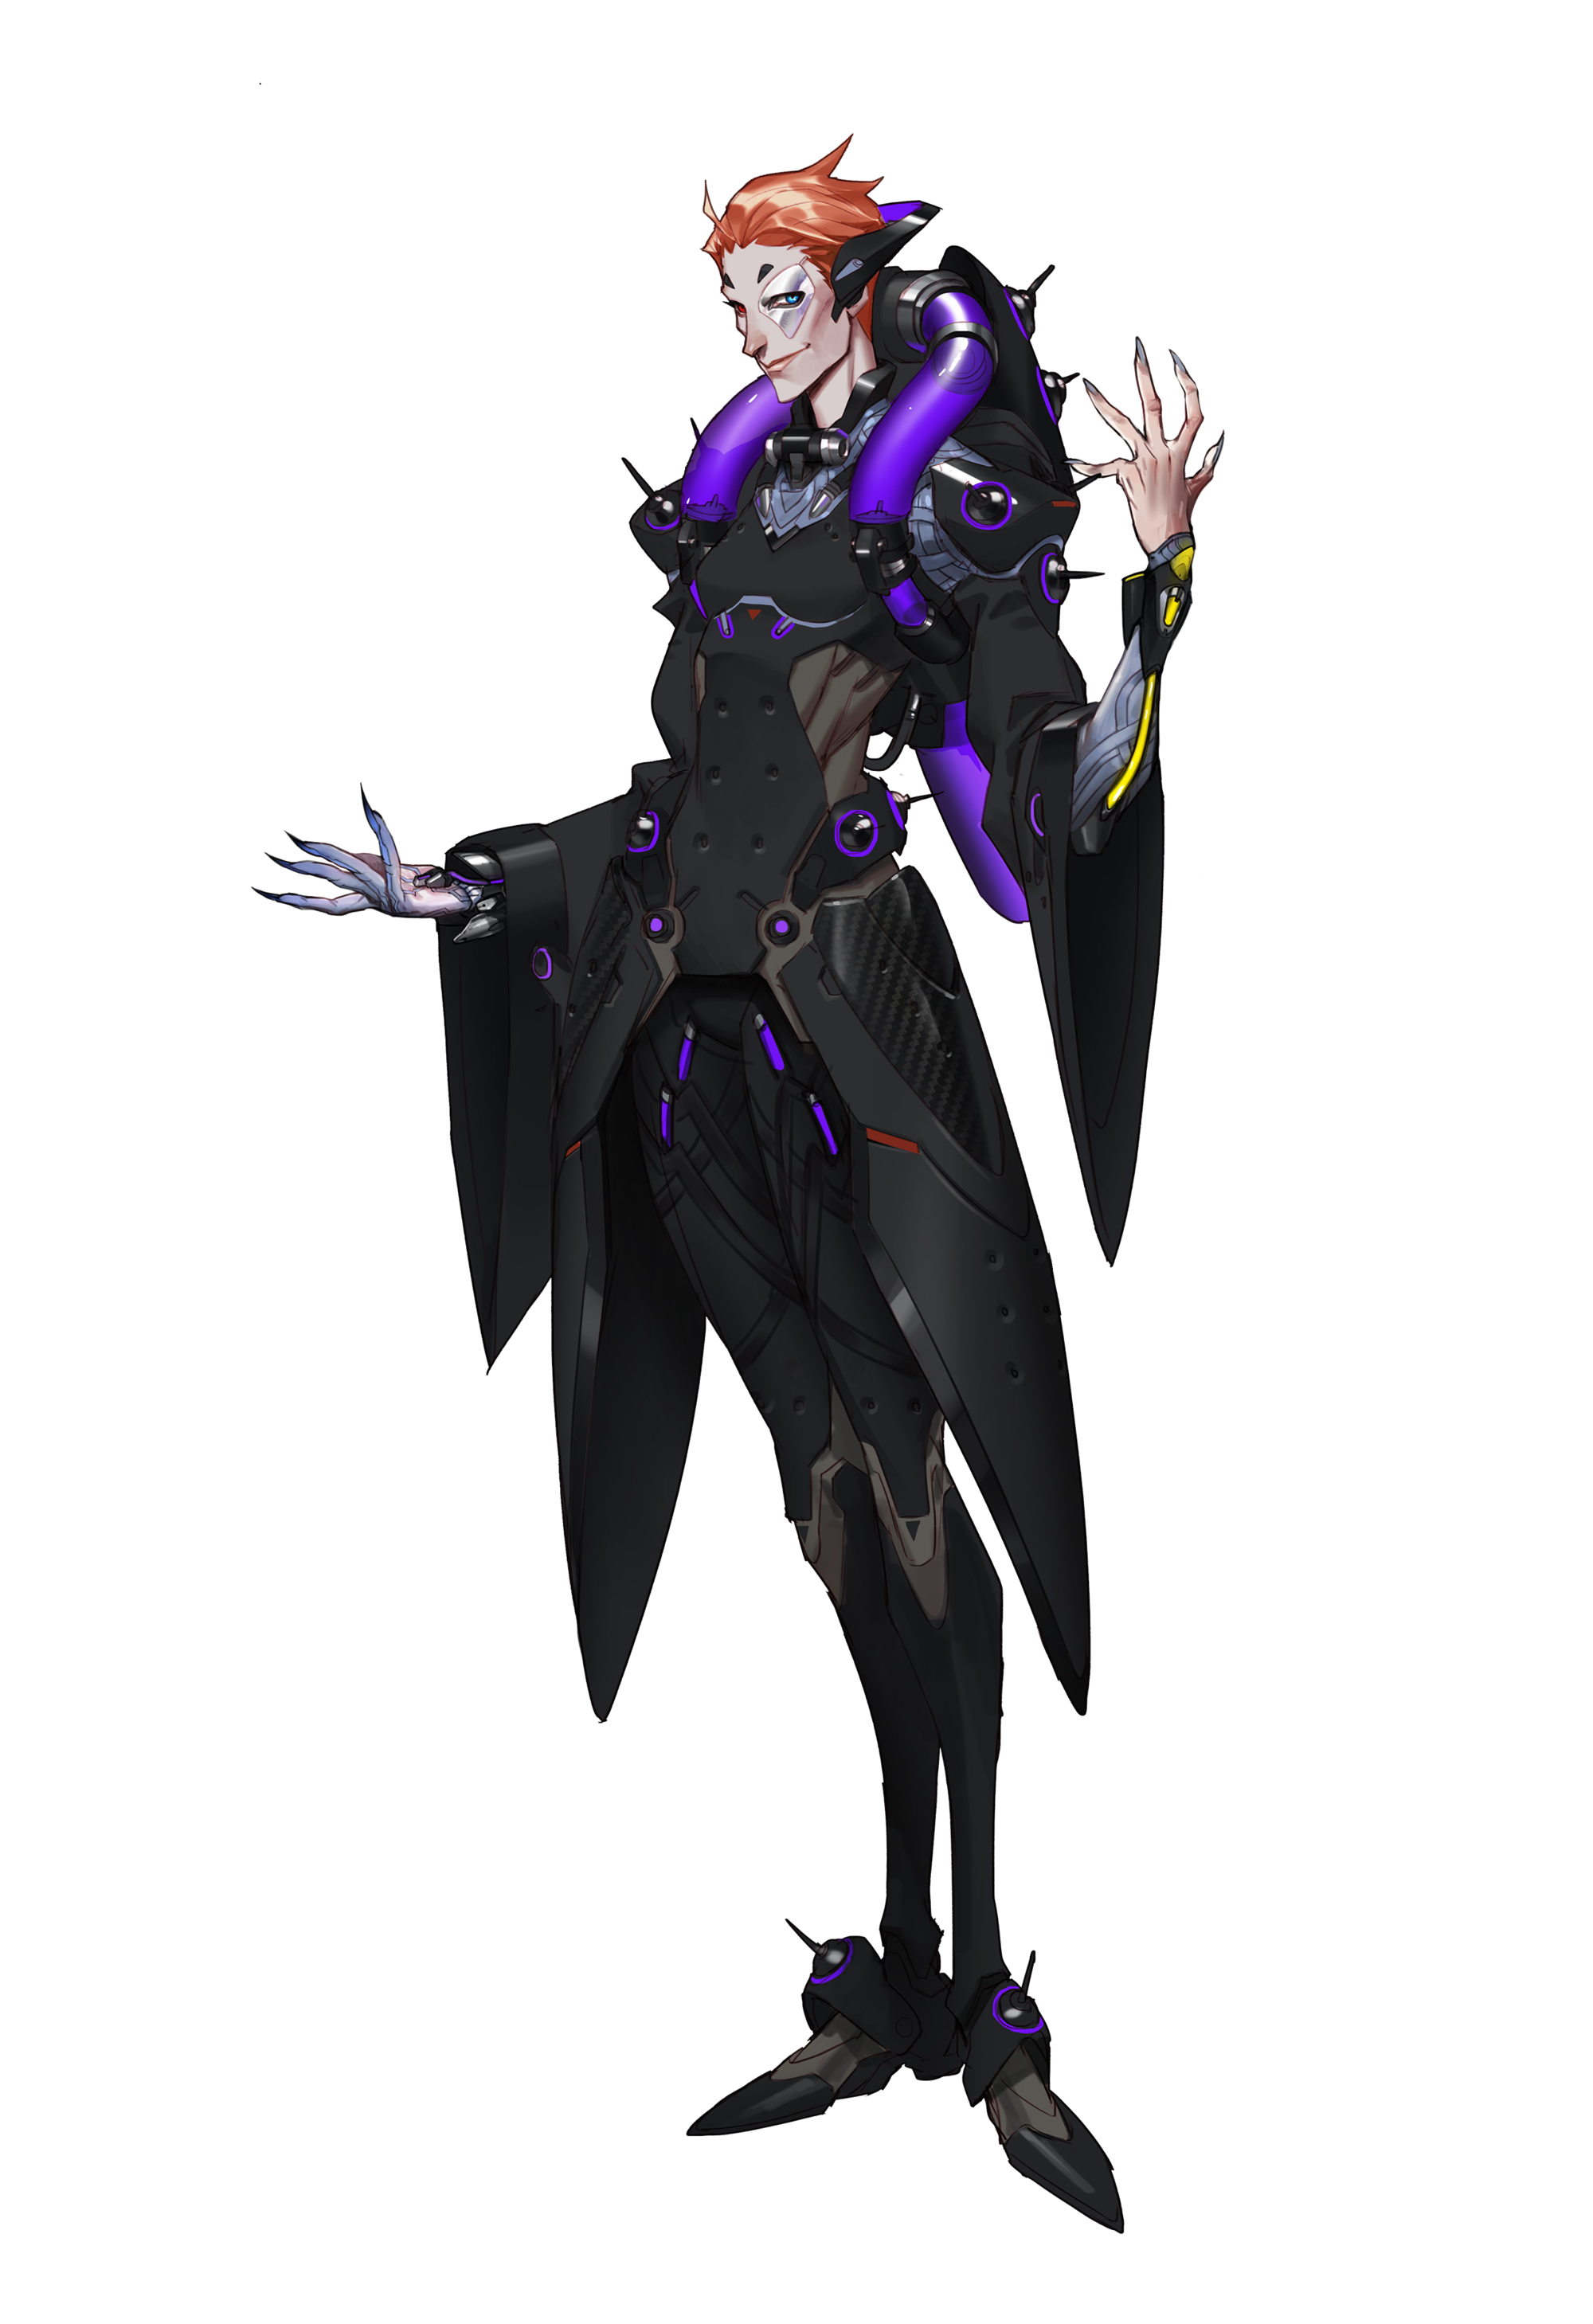 Character profile wikia fandom. Moira overwatch png